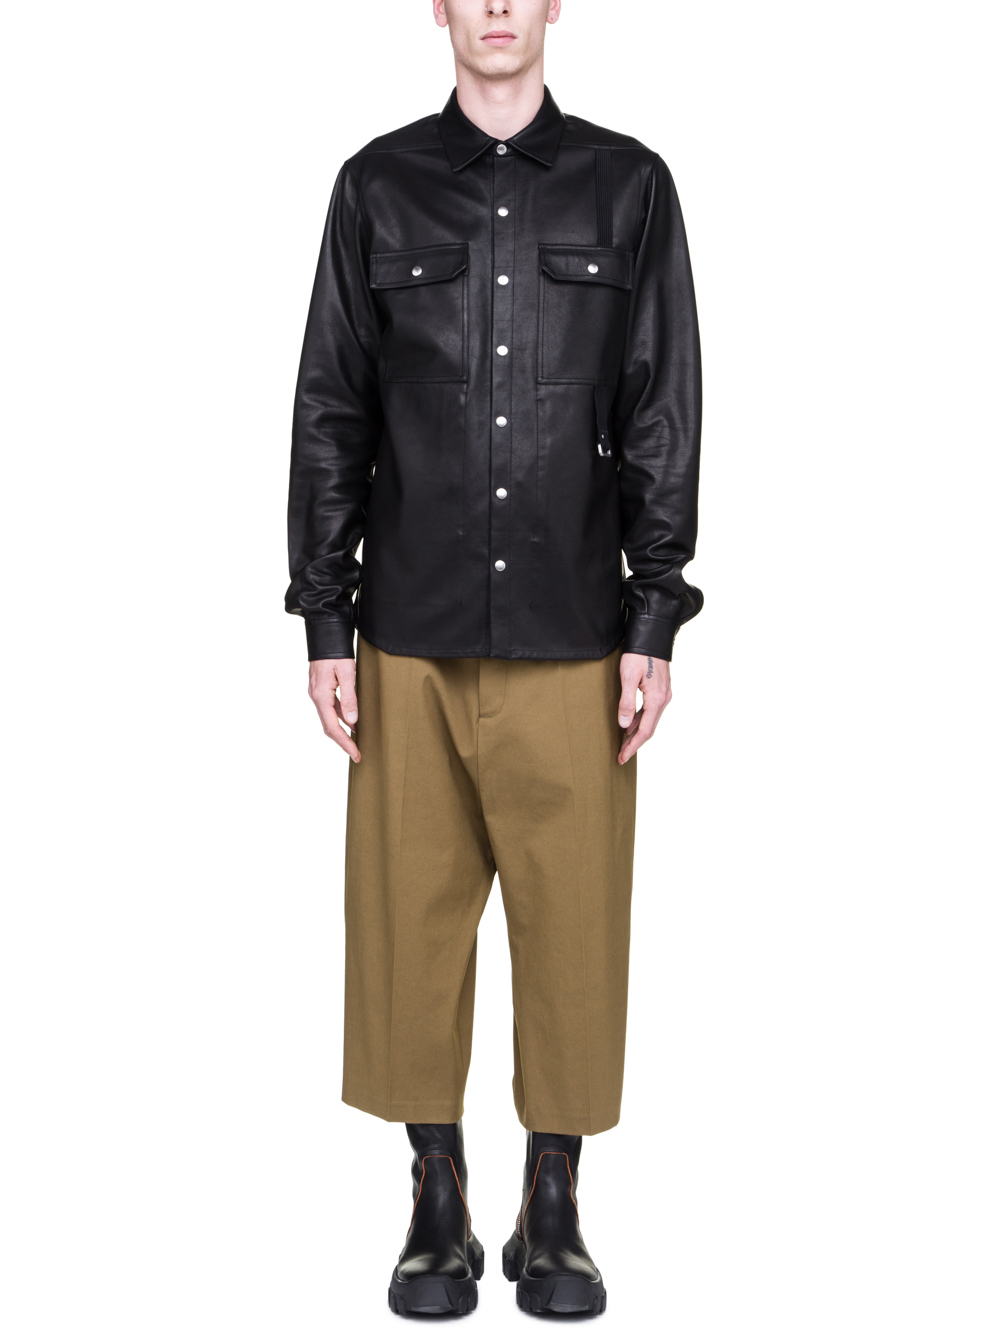 RICK OWENS SS19 BABEL OUTERSHIRT IN BLACK COWBOY CALF LEATHER